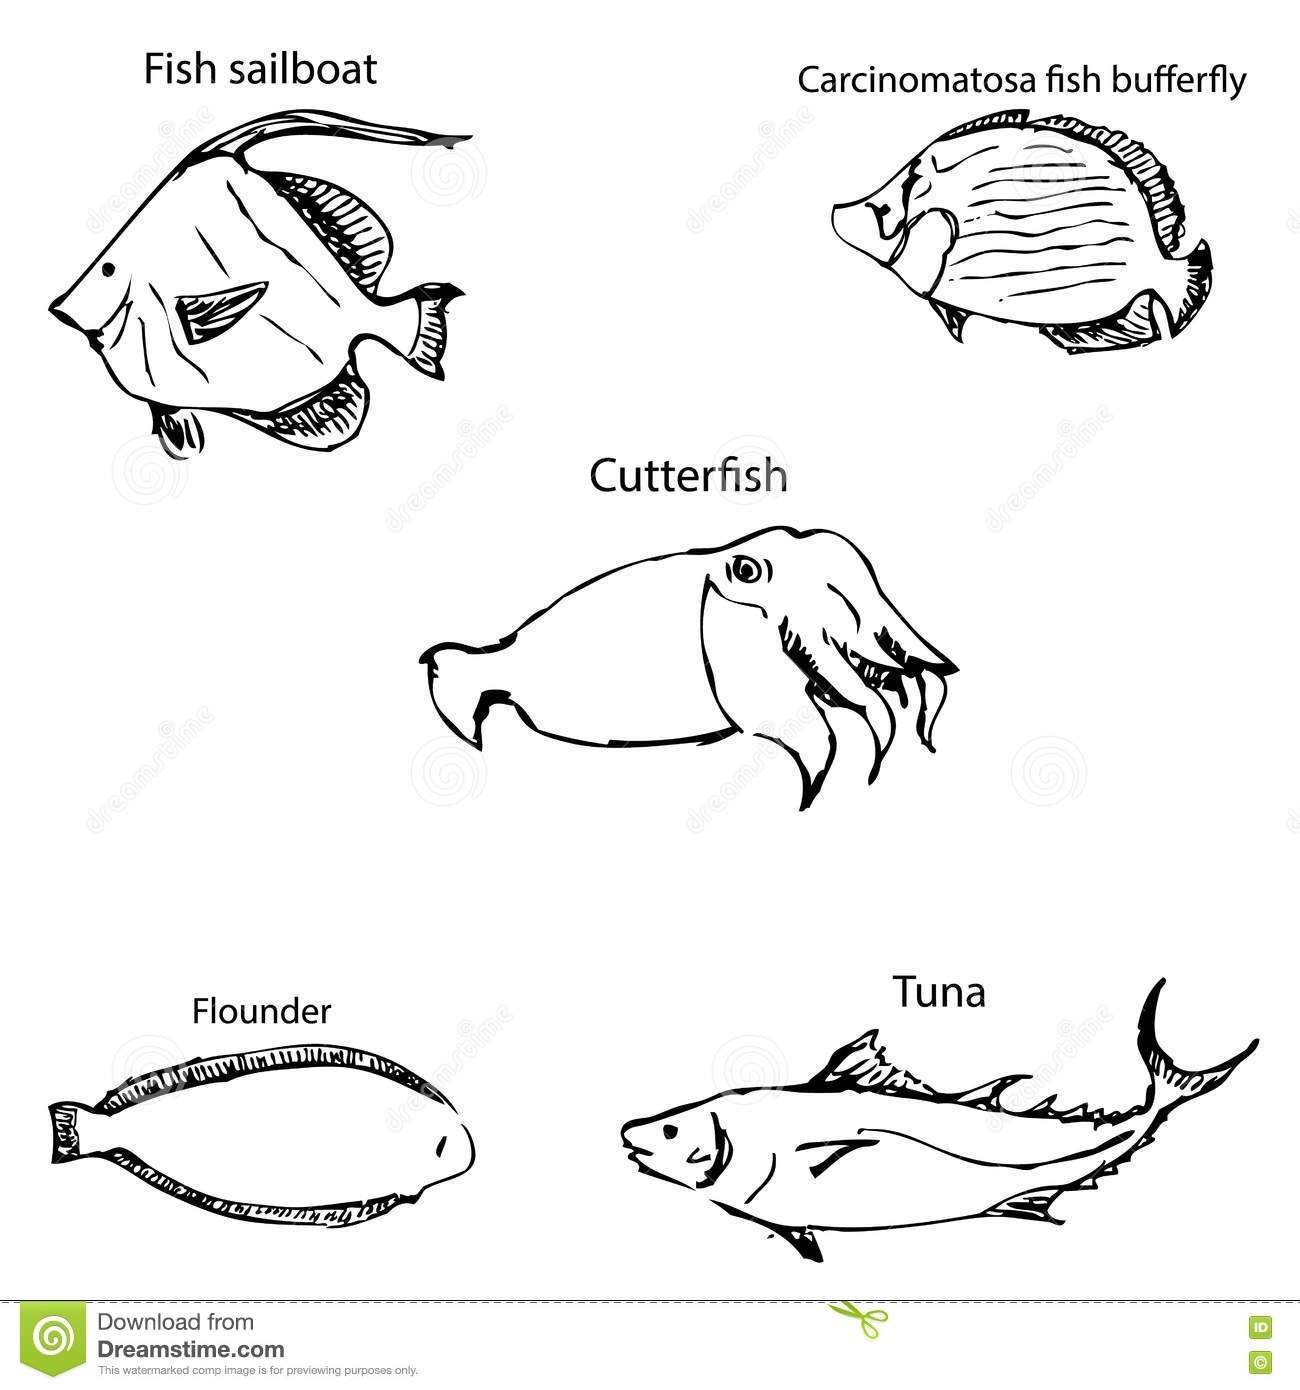 Marine inhabitants with names pencil sketch by hand